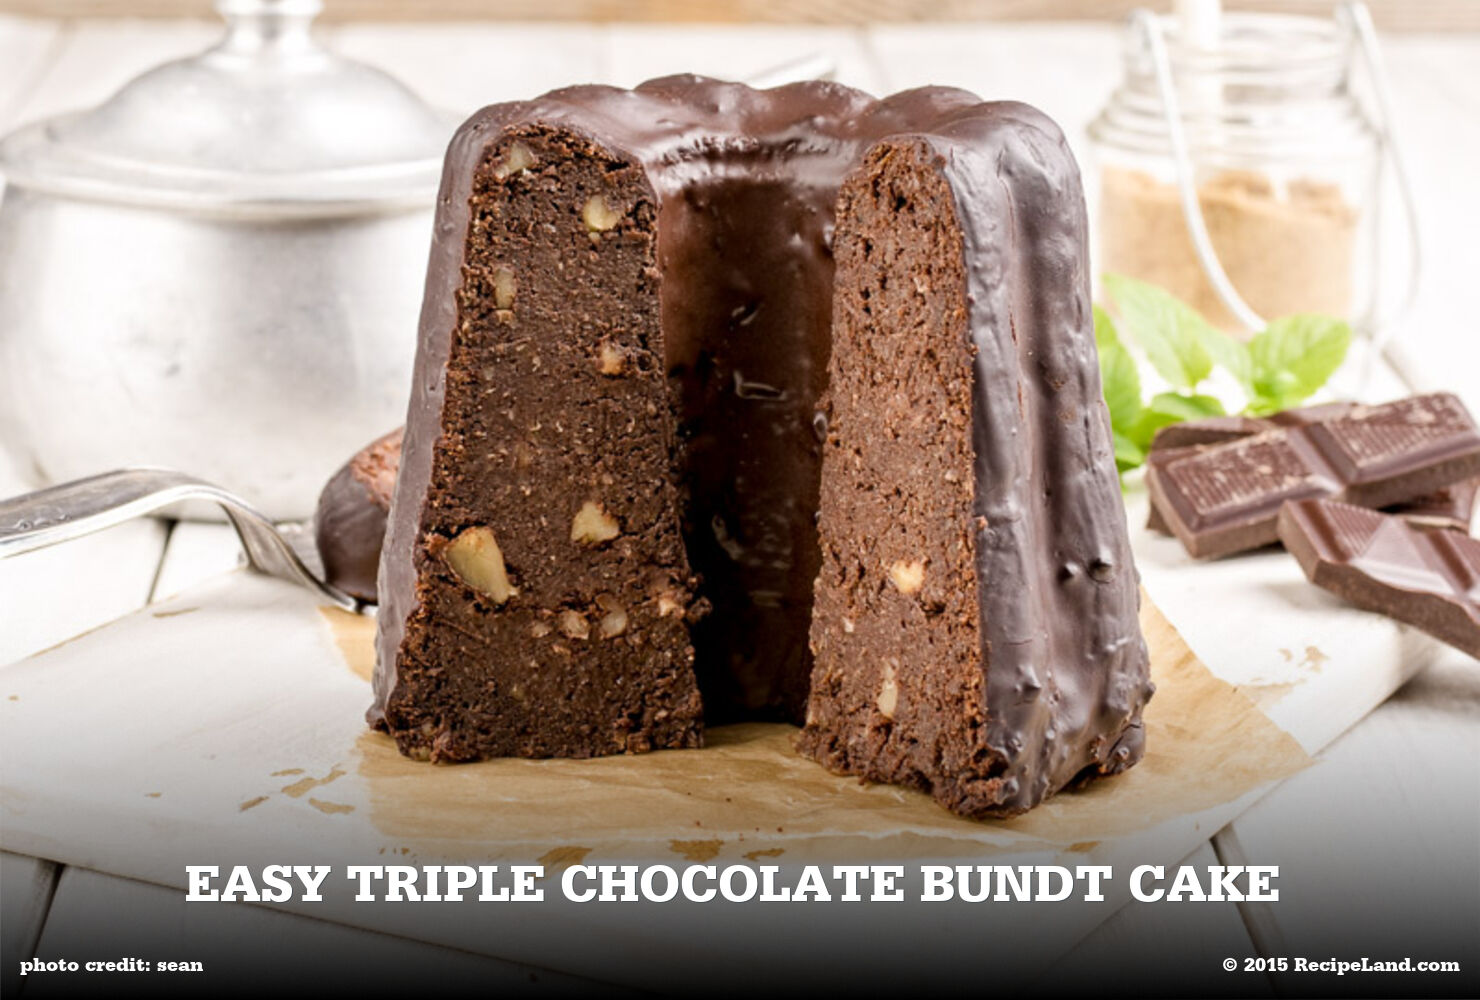 Easy Triple Chocolate Bundt Cake